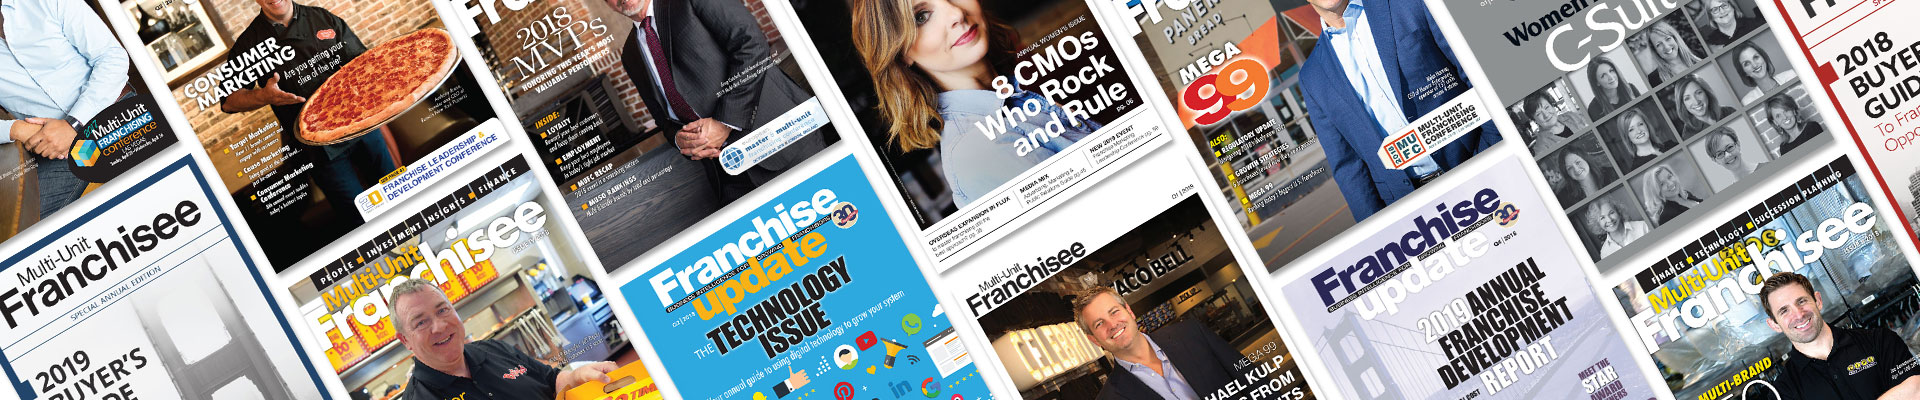 Franchise Update Media - Print - Magazines